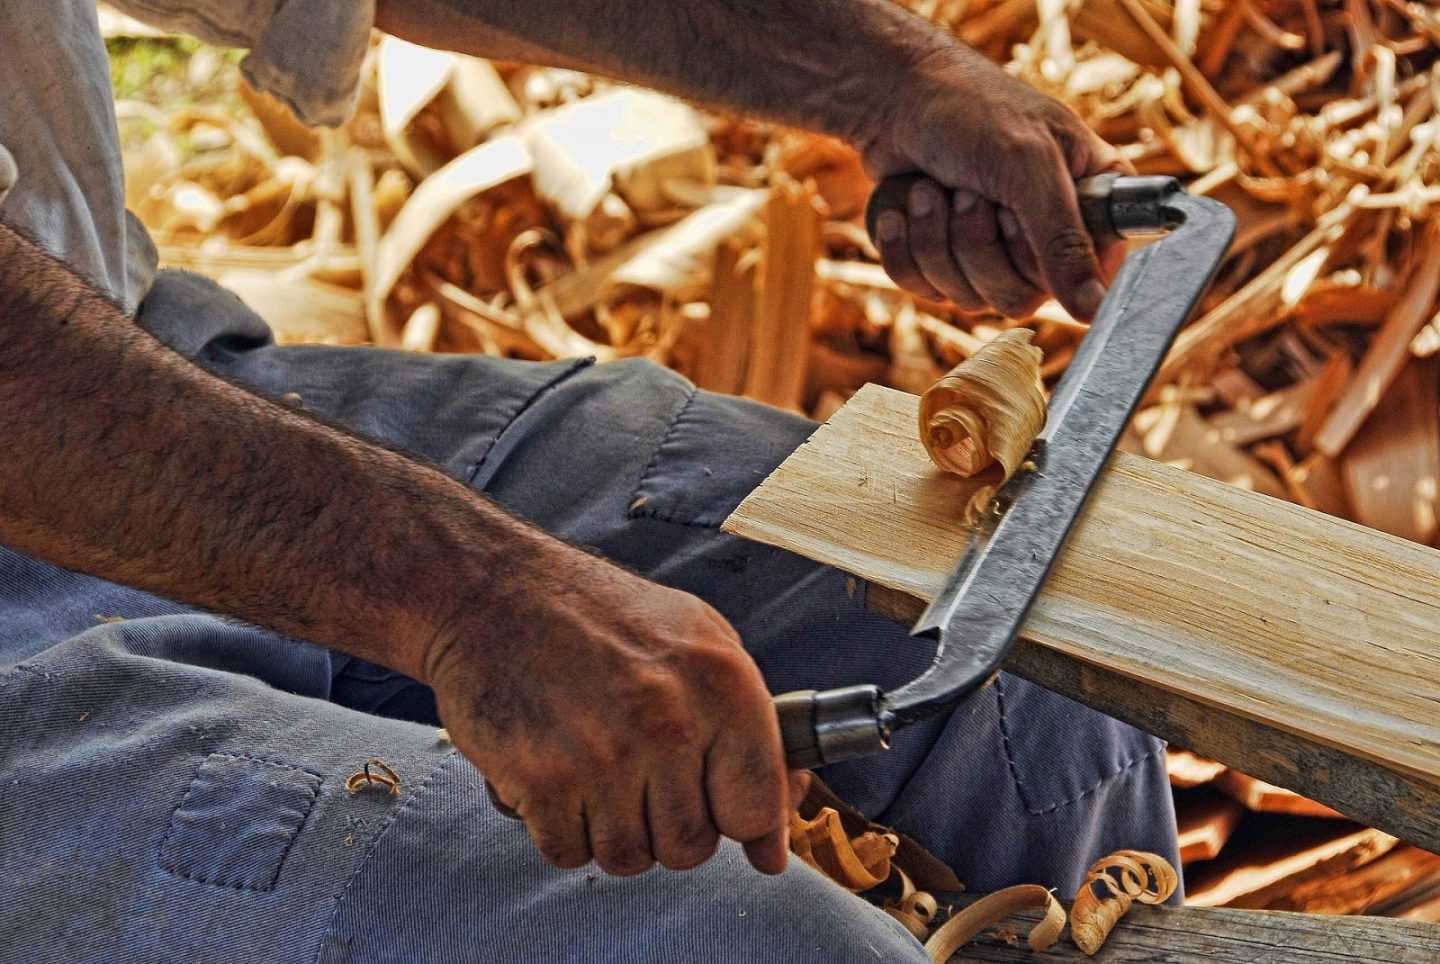 woodworking tips 2021